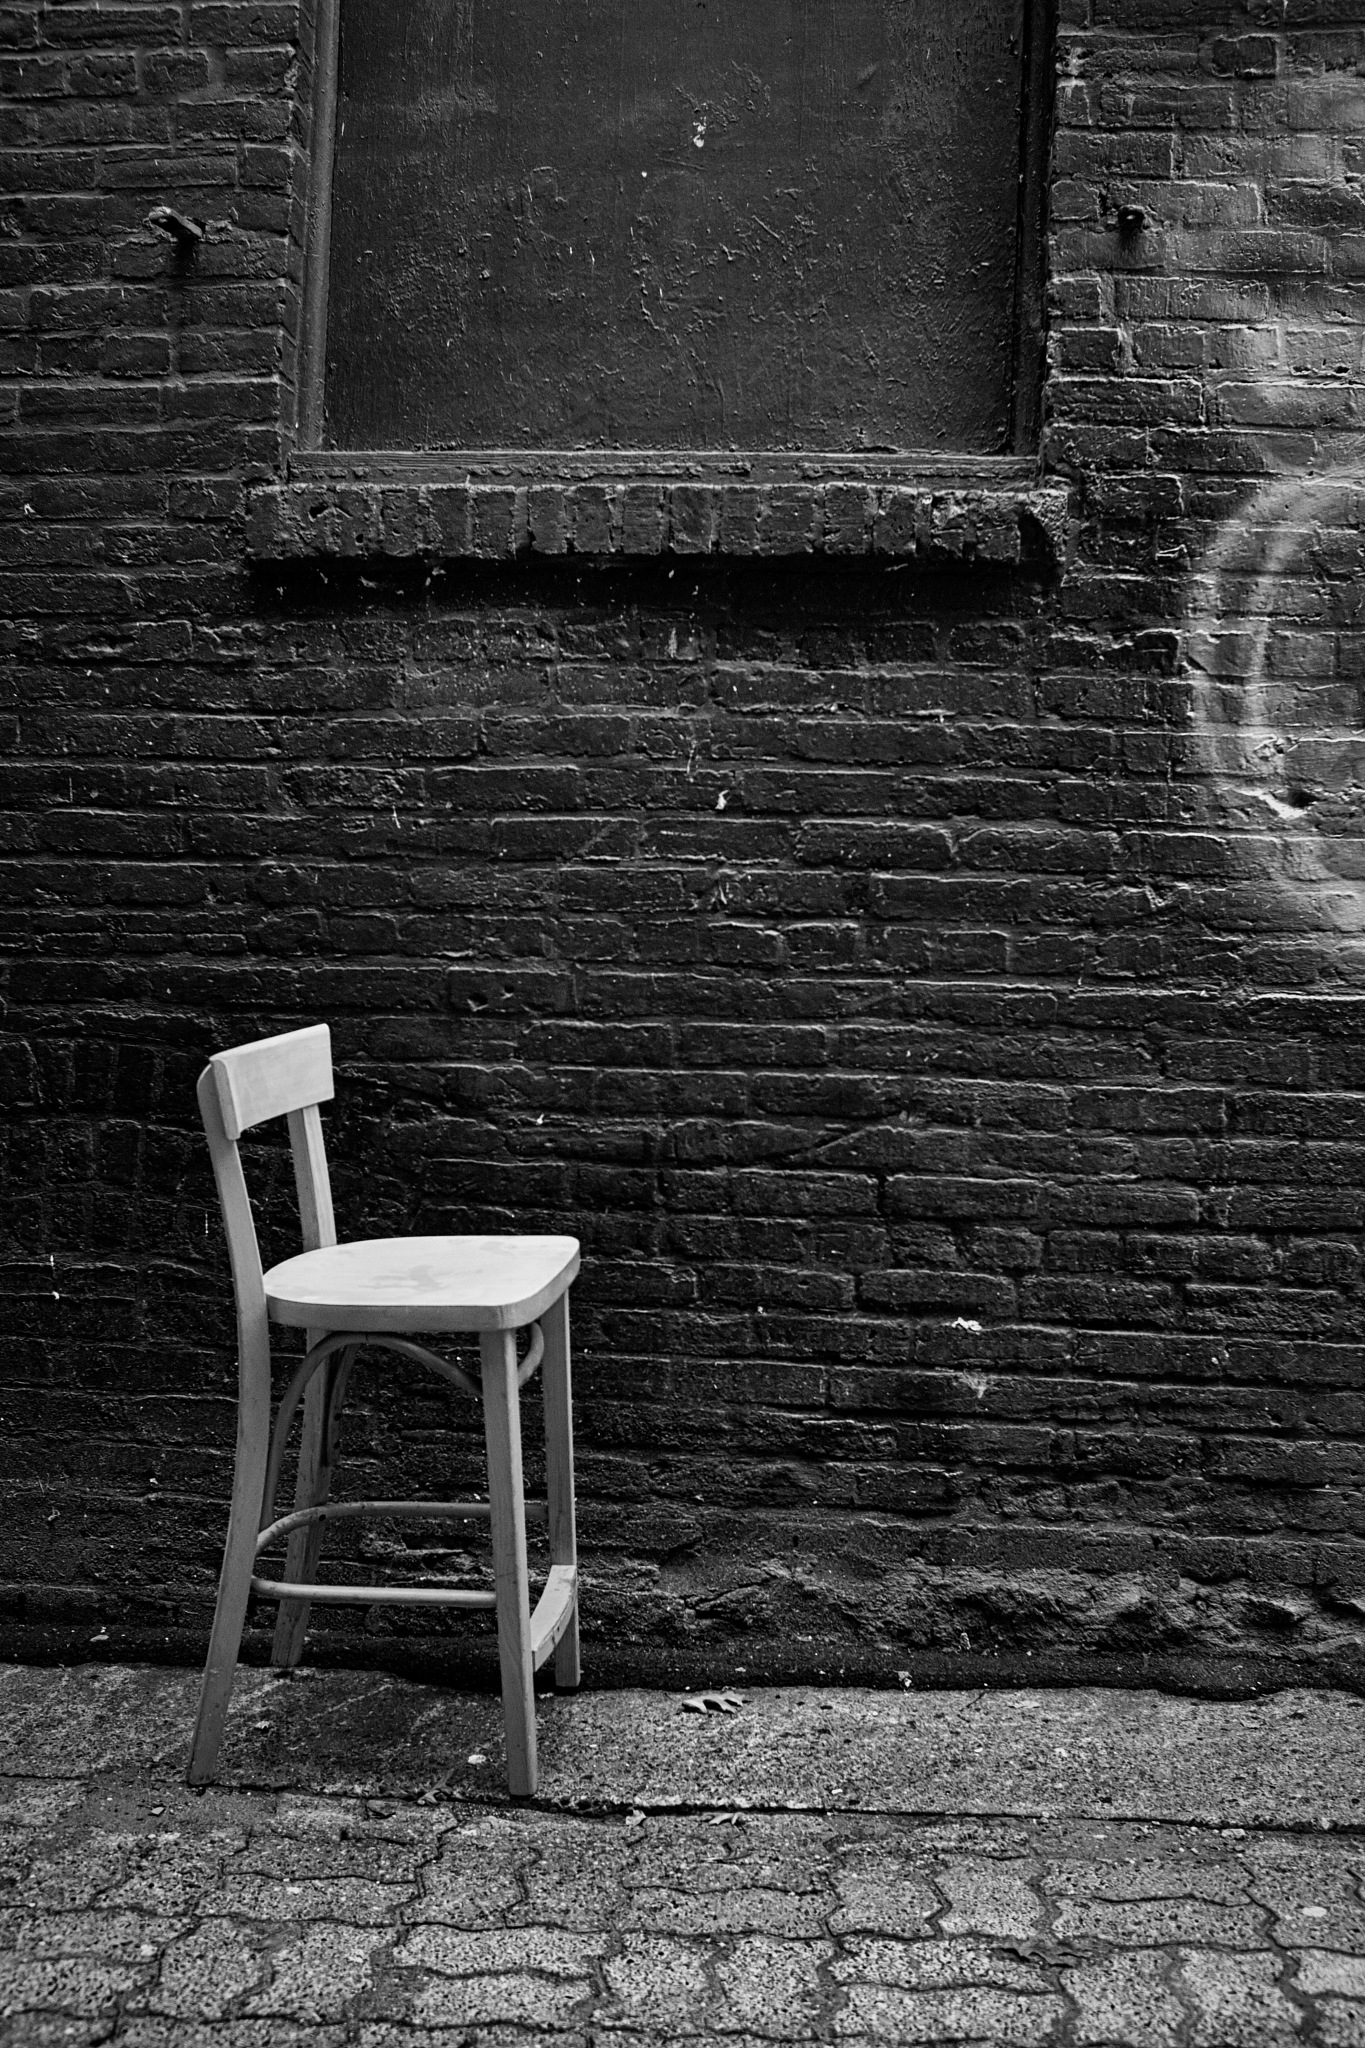 Alley chair by Greg Mullaly